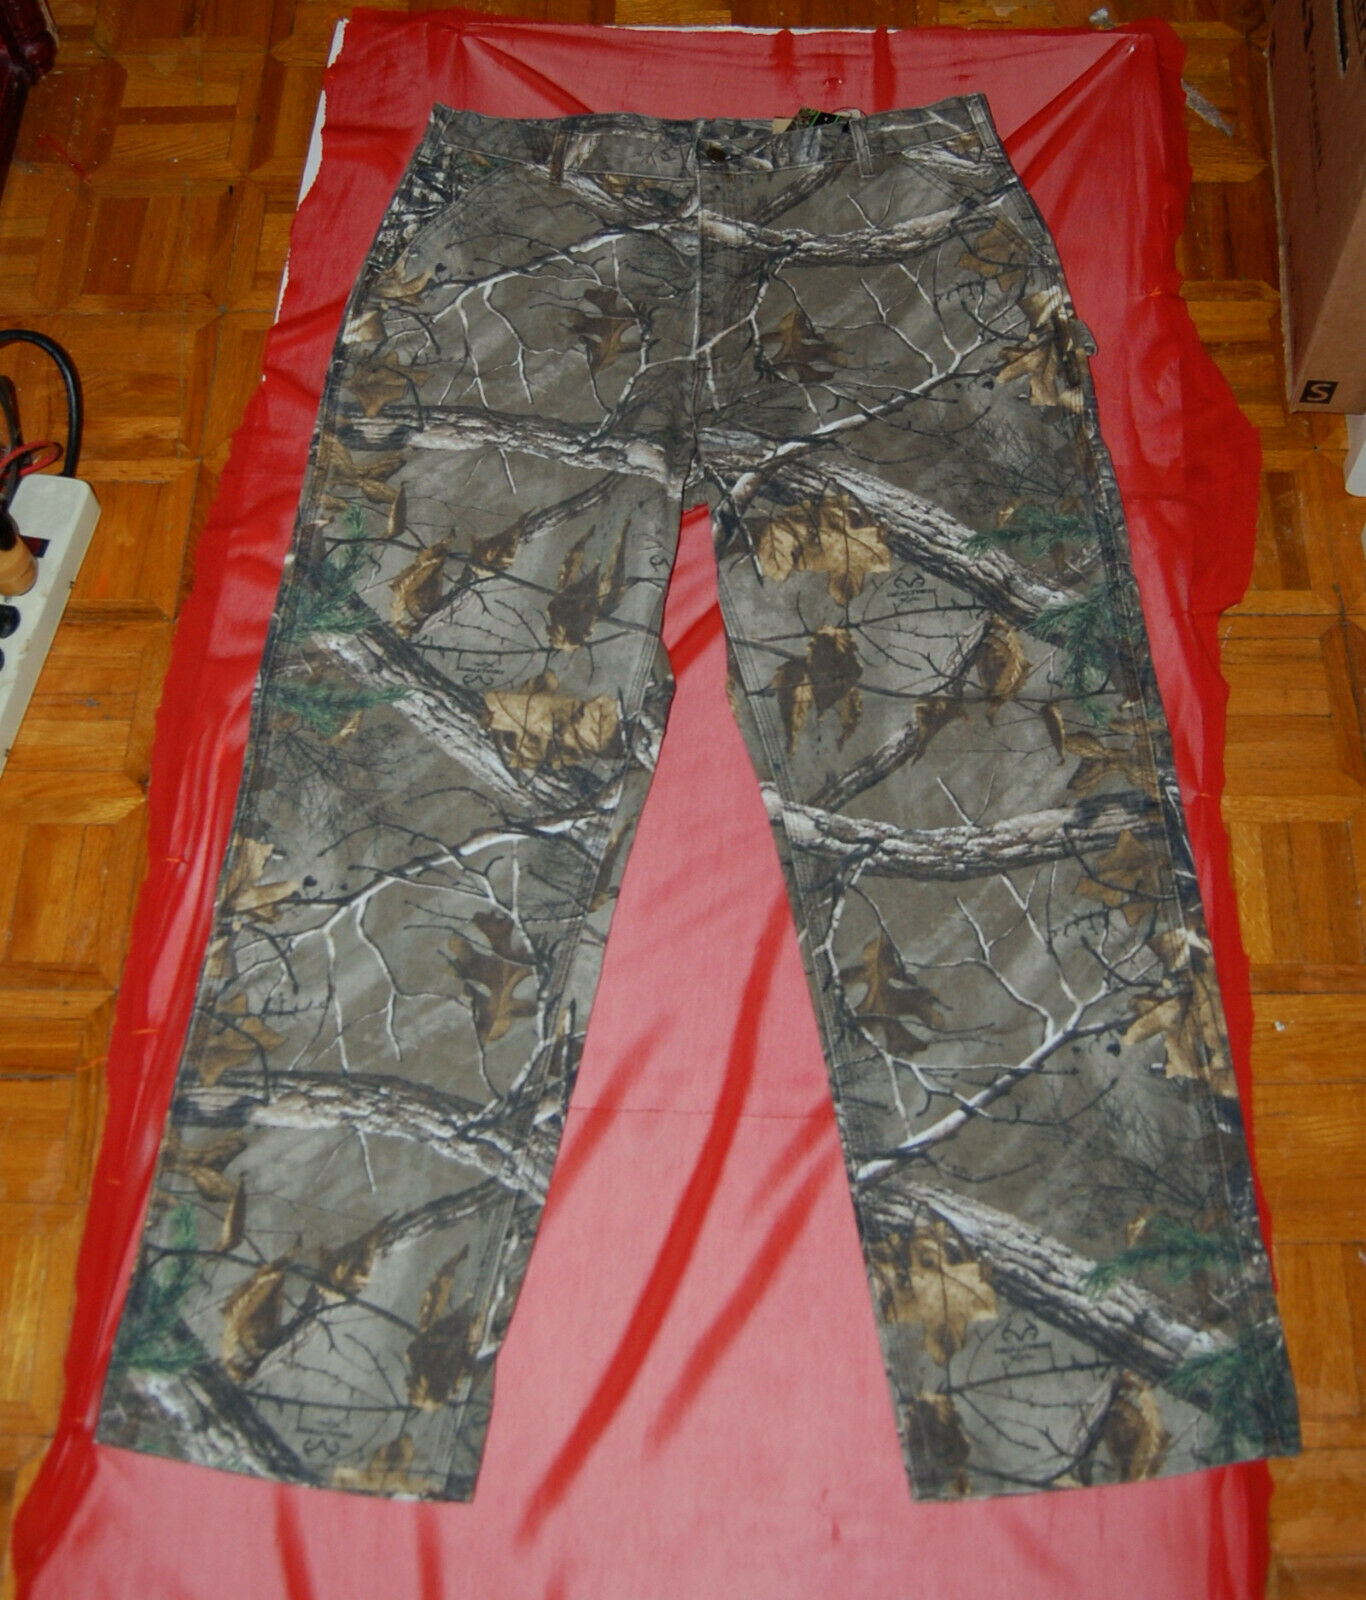 NWT CARHARTT WorkCamo Realtree AP Dungaree Pants B235 IRR 40 x 32 or 42 x 30 USA